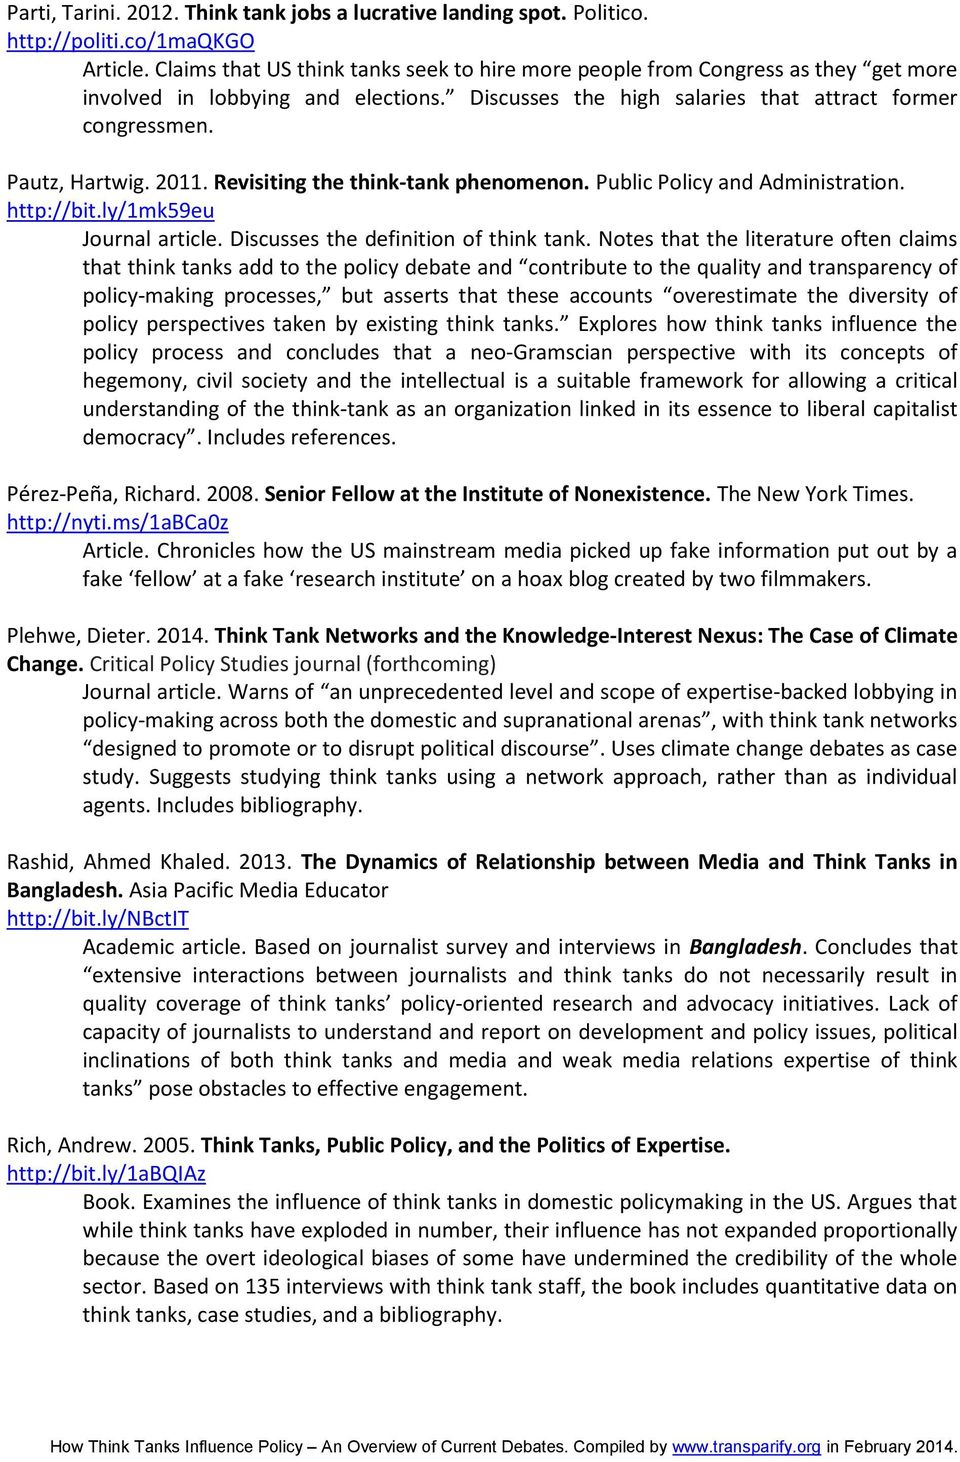 how think tanks influence policy an overview of current debates - pdf